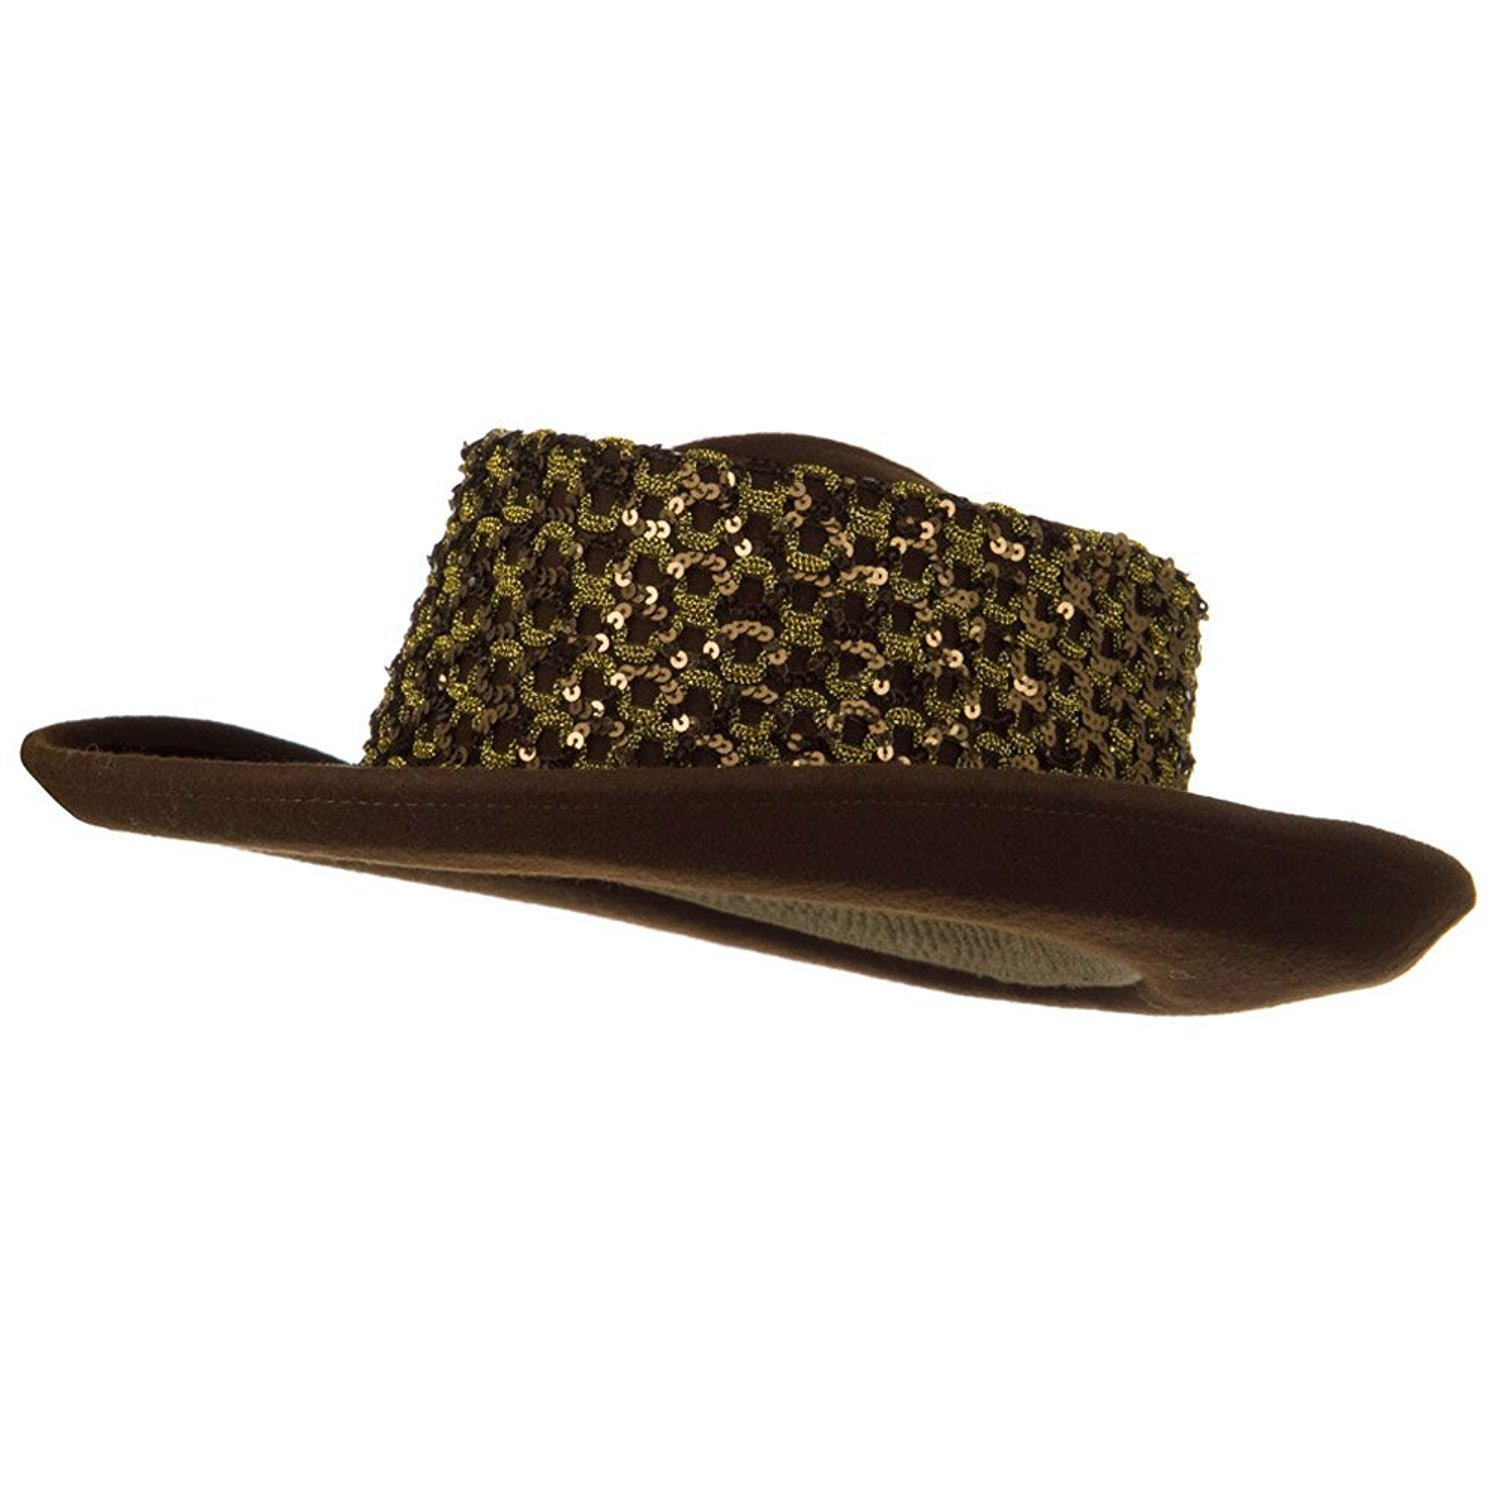 a17ac5a40ad Get Quotations · Sequin Band Wool Felt Hat - Brown W19S33F